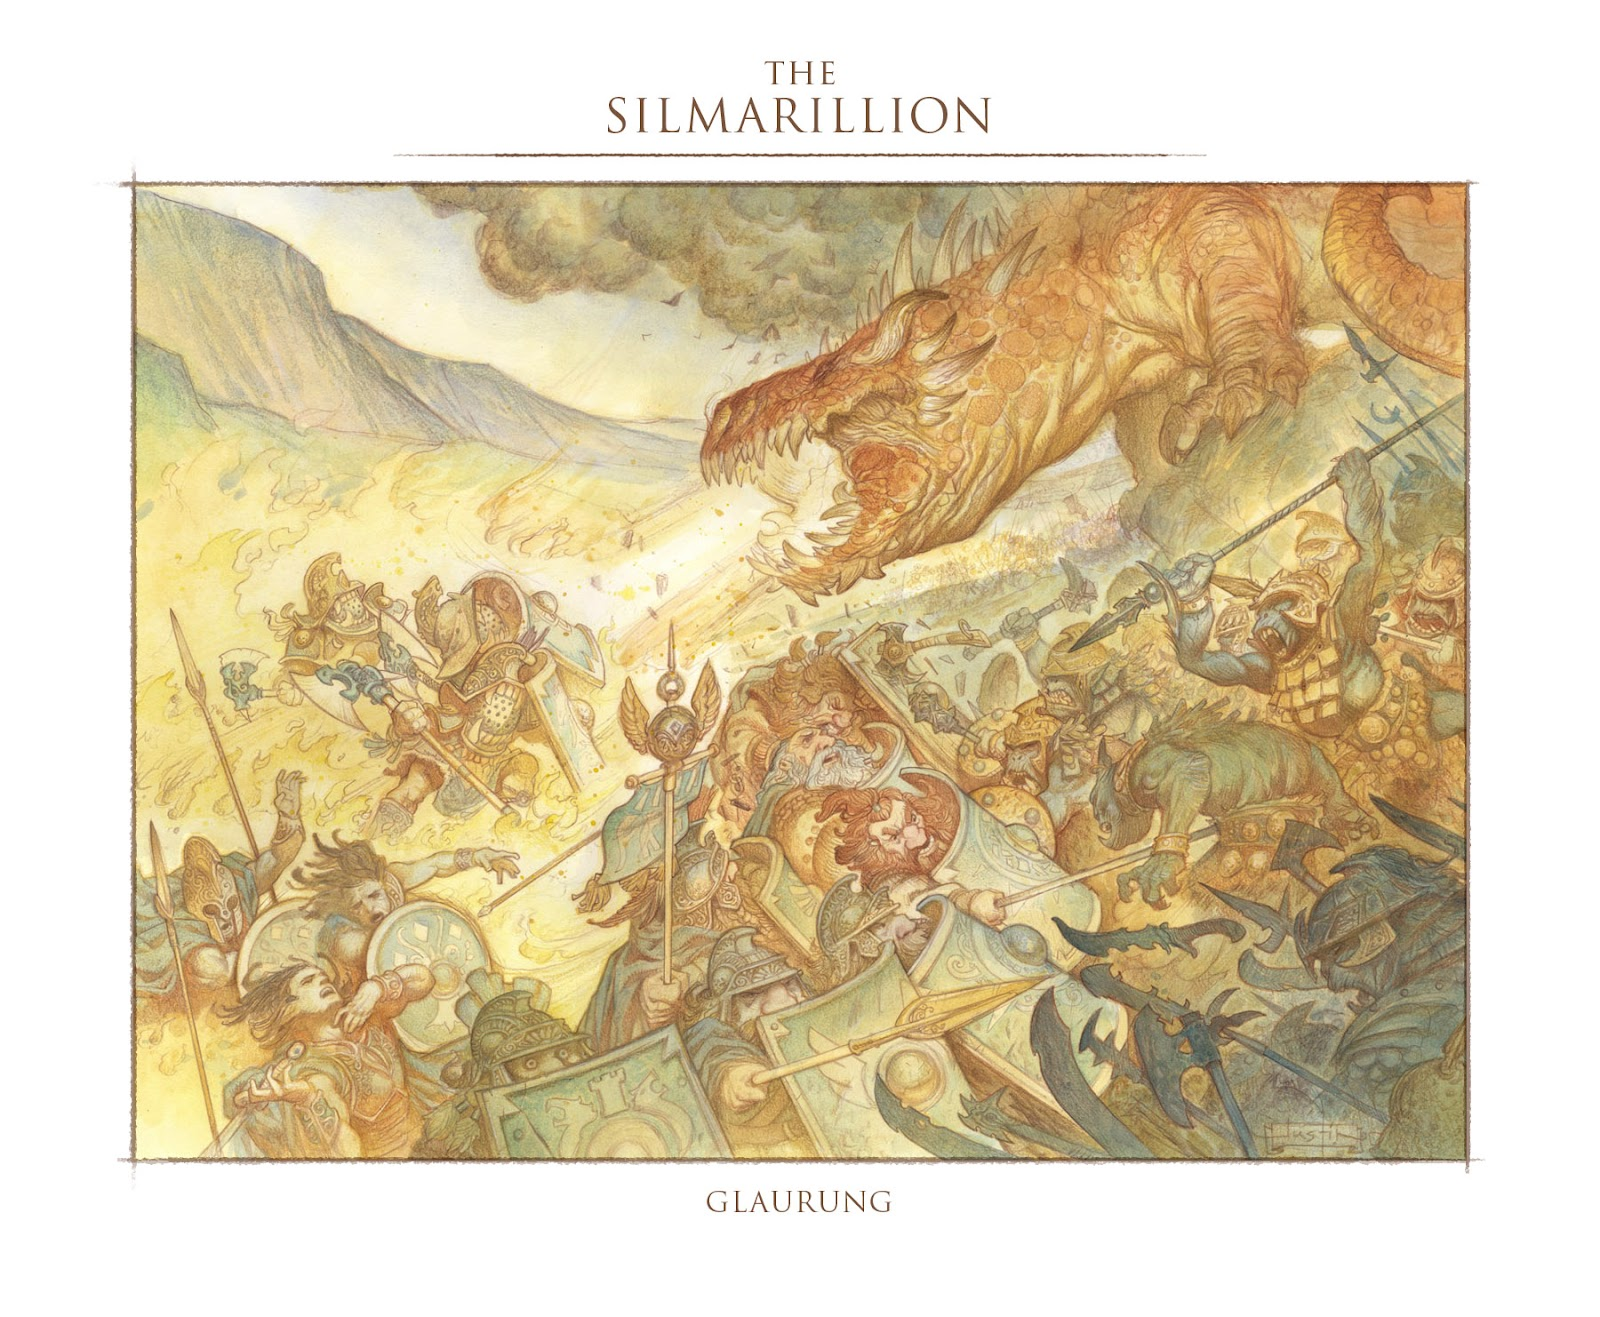 The Silmarillion: Glaurung